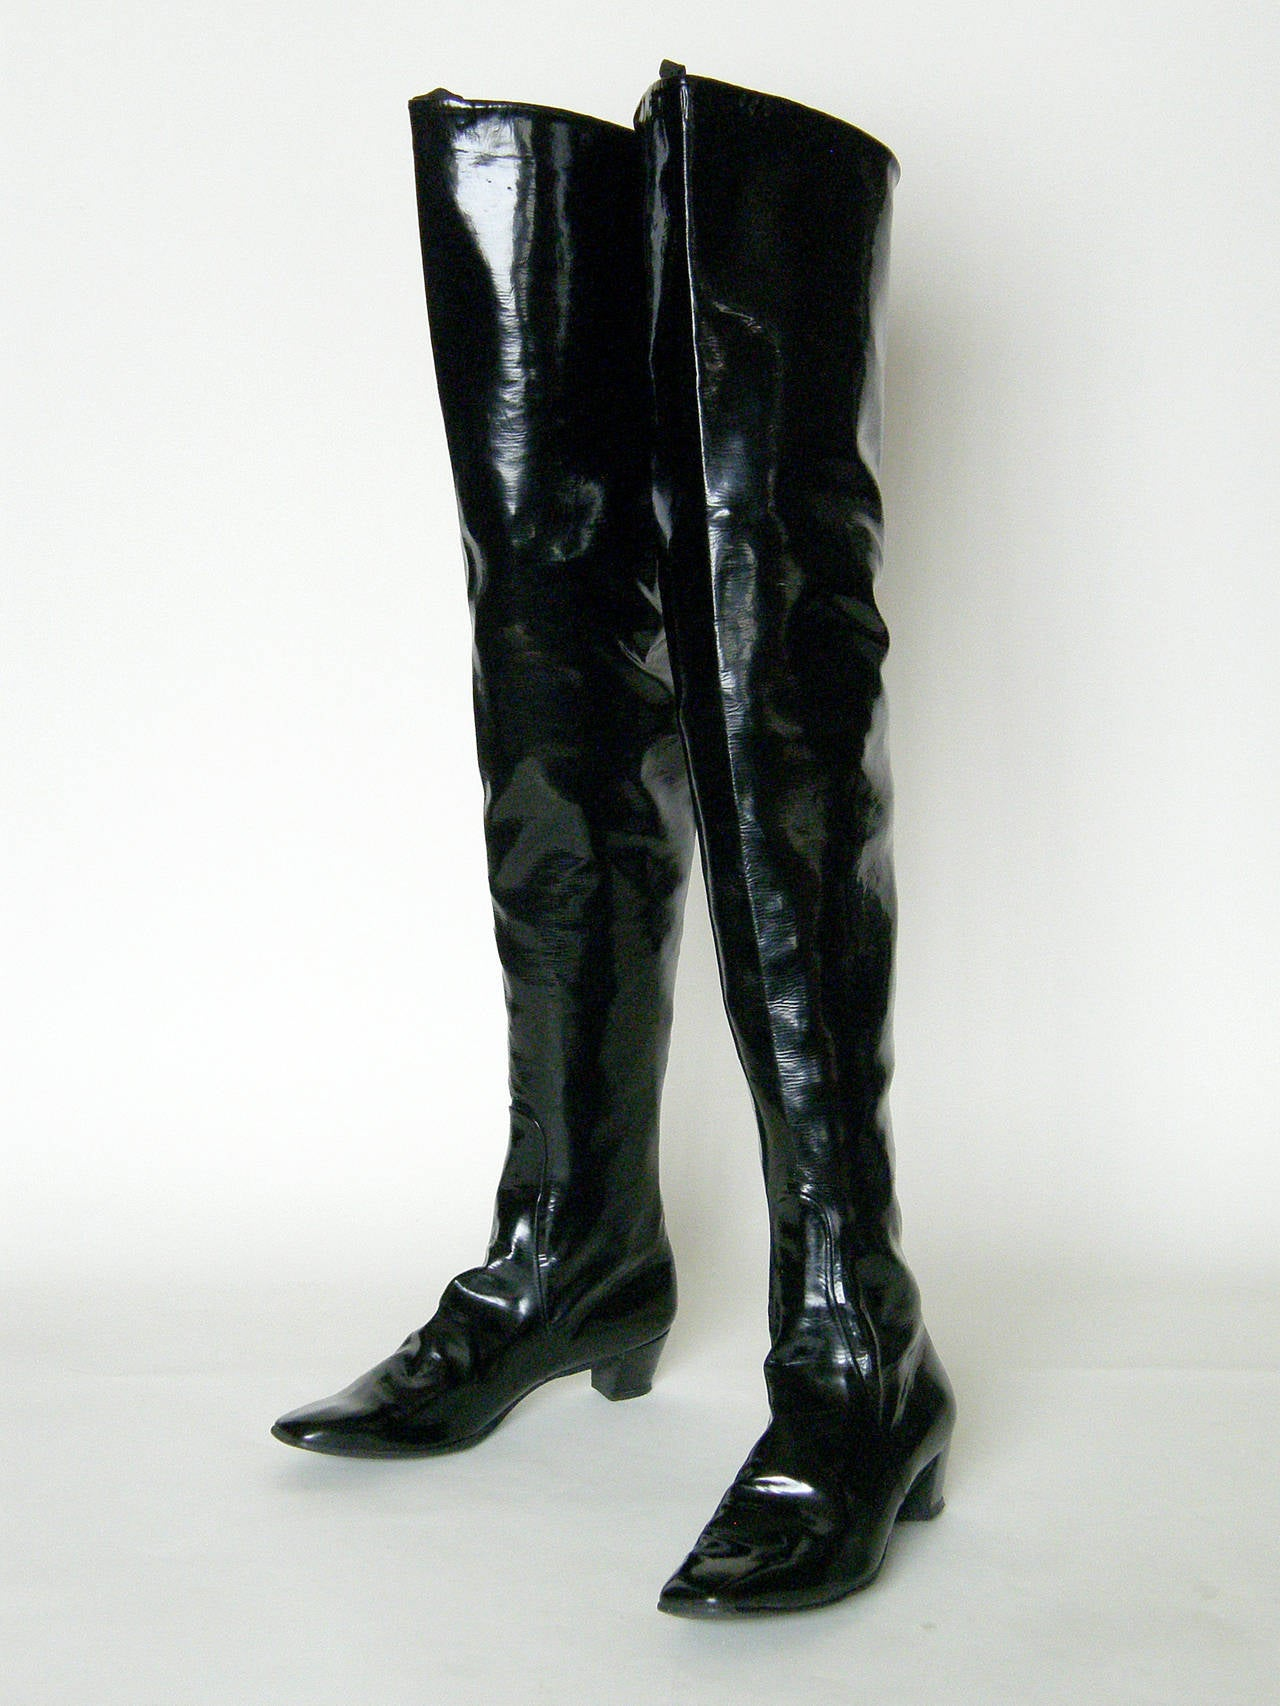 Beth Levine Thigh High Black Vinyl Boots at 1stdibs